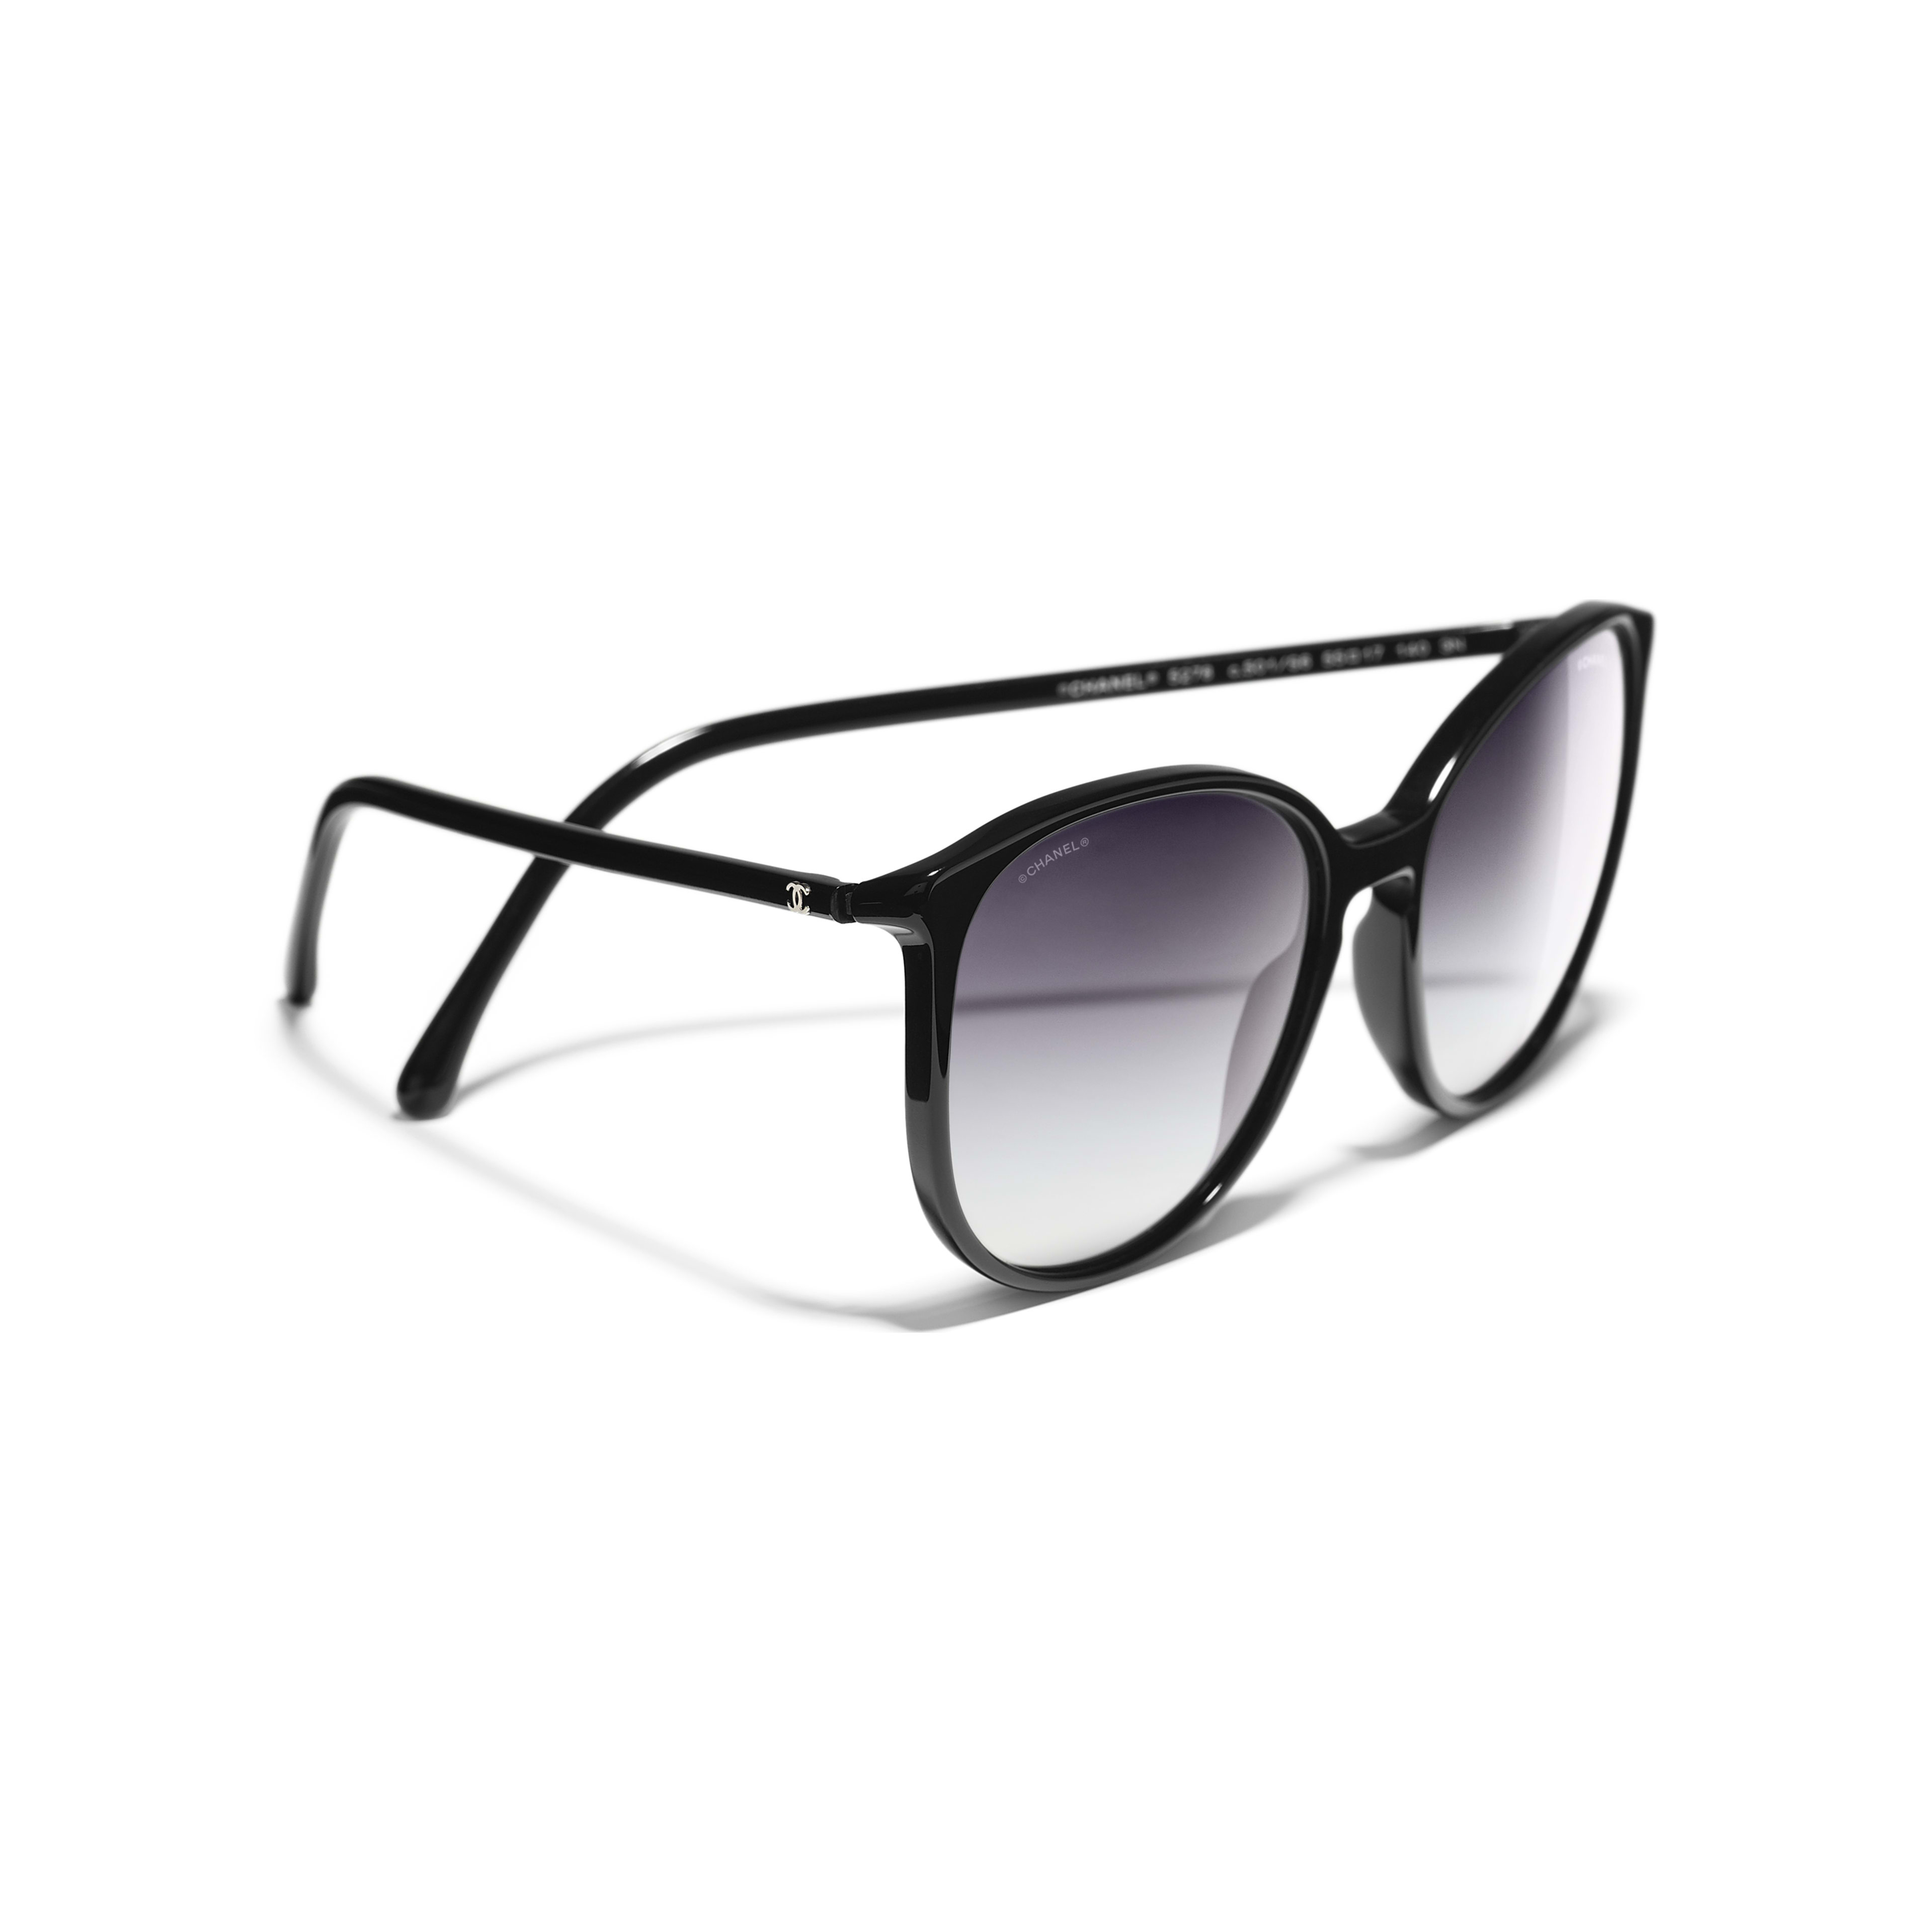 Butterfly Sunglasses - Black - Acetate - CHANEL - Extra view - see standard sized version